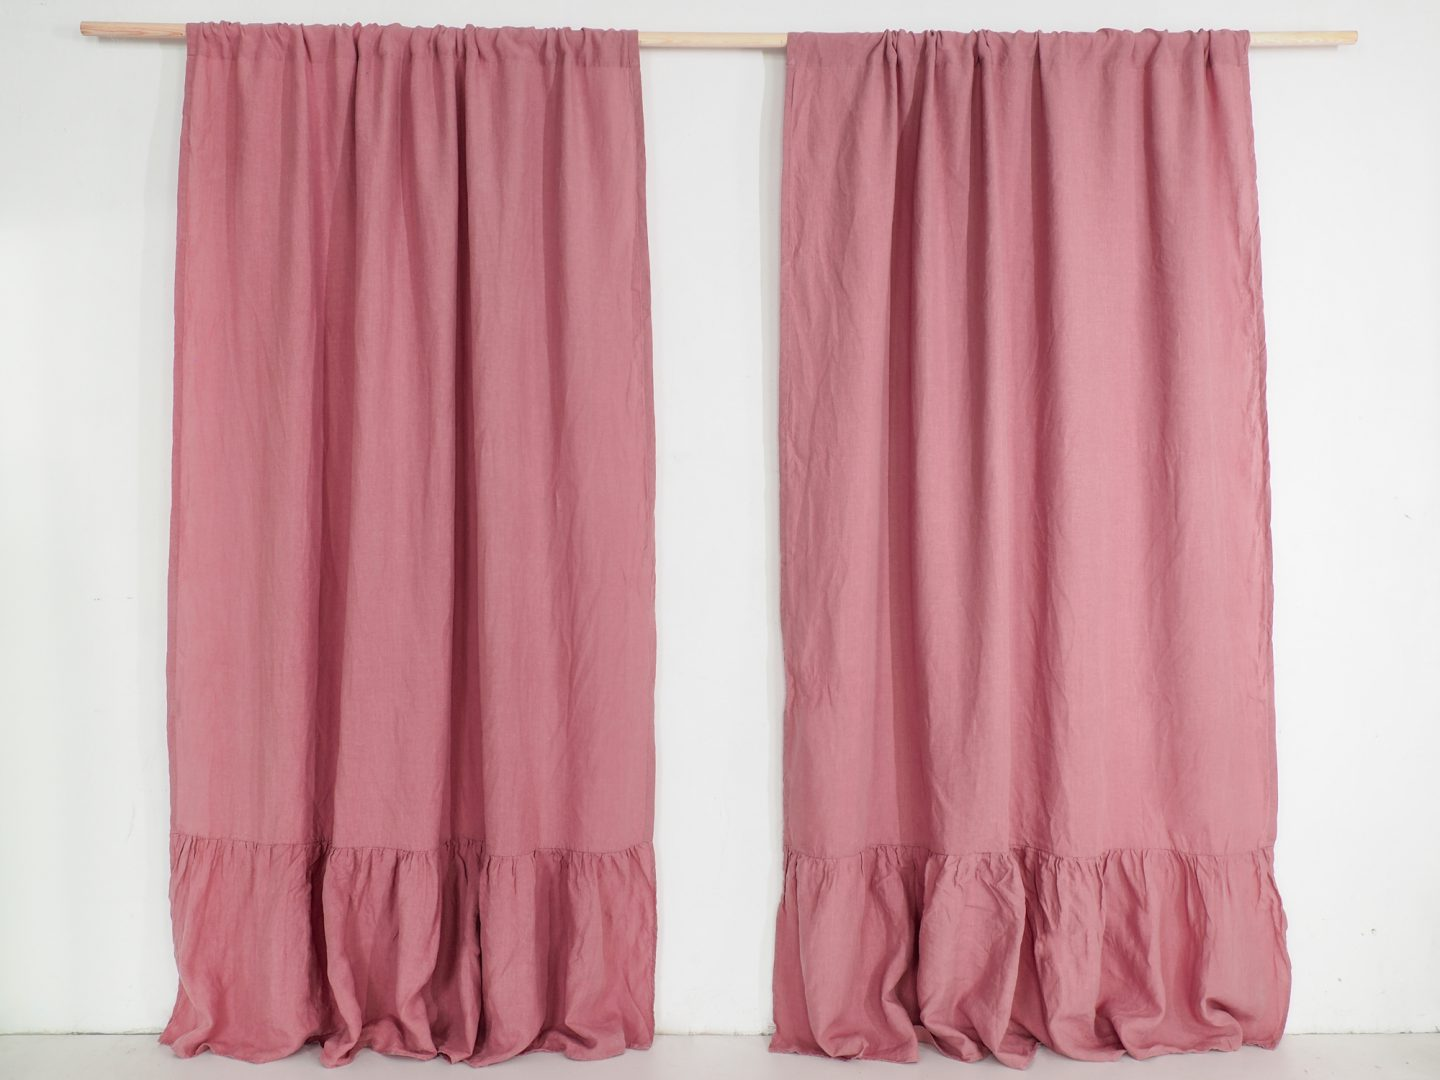 Ruffled curtains in dusty pink